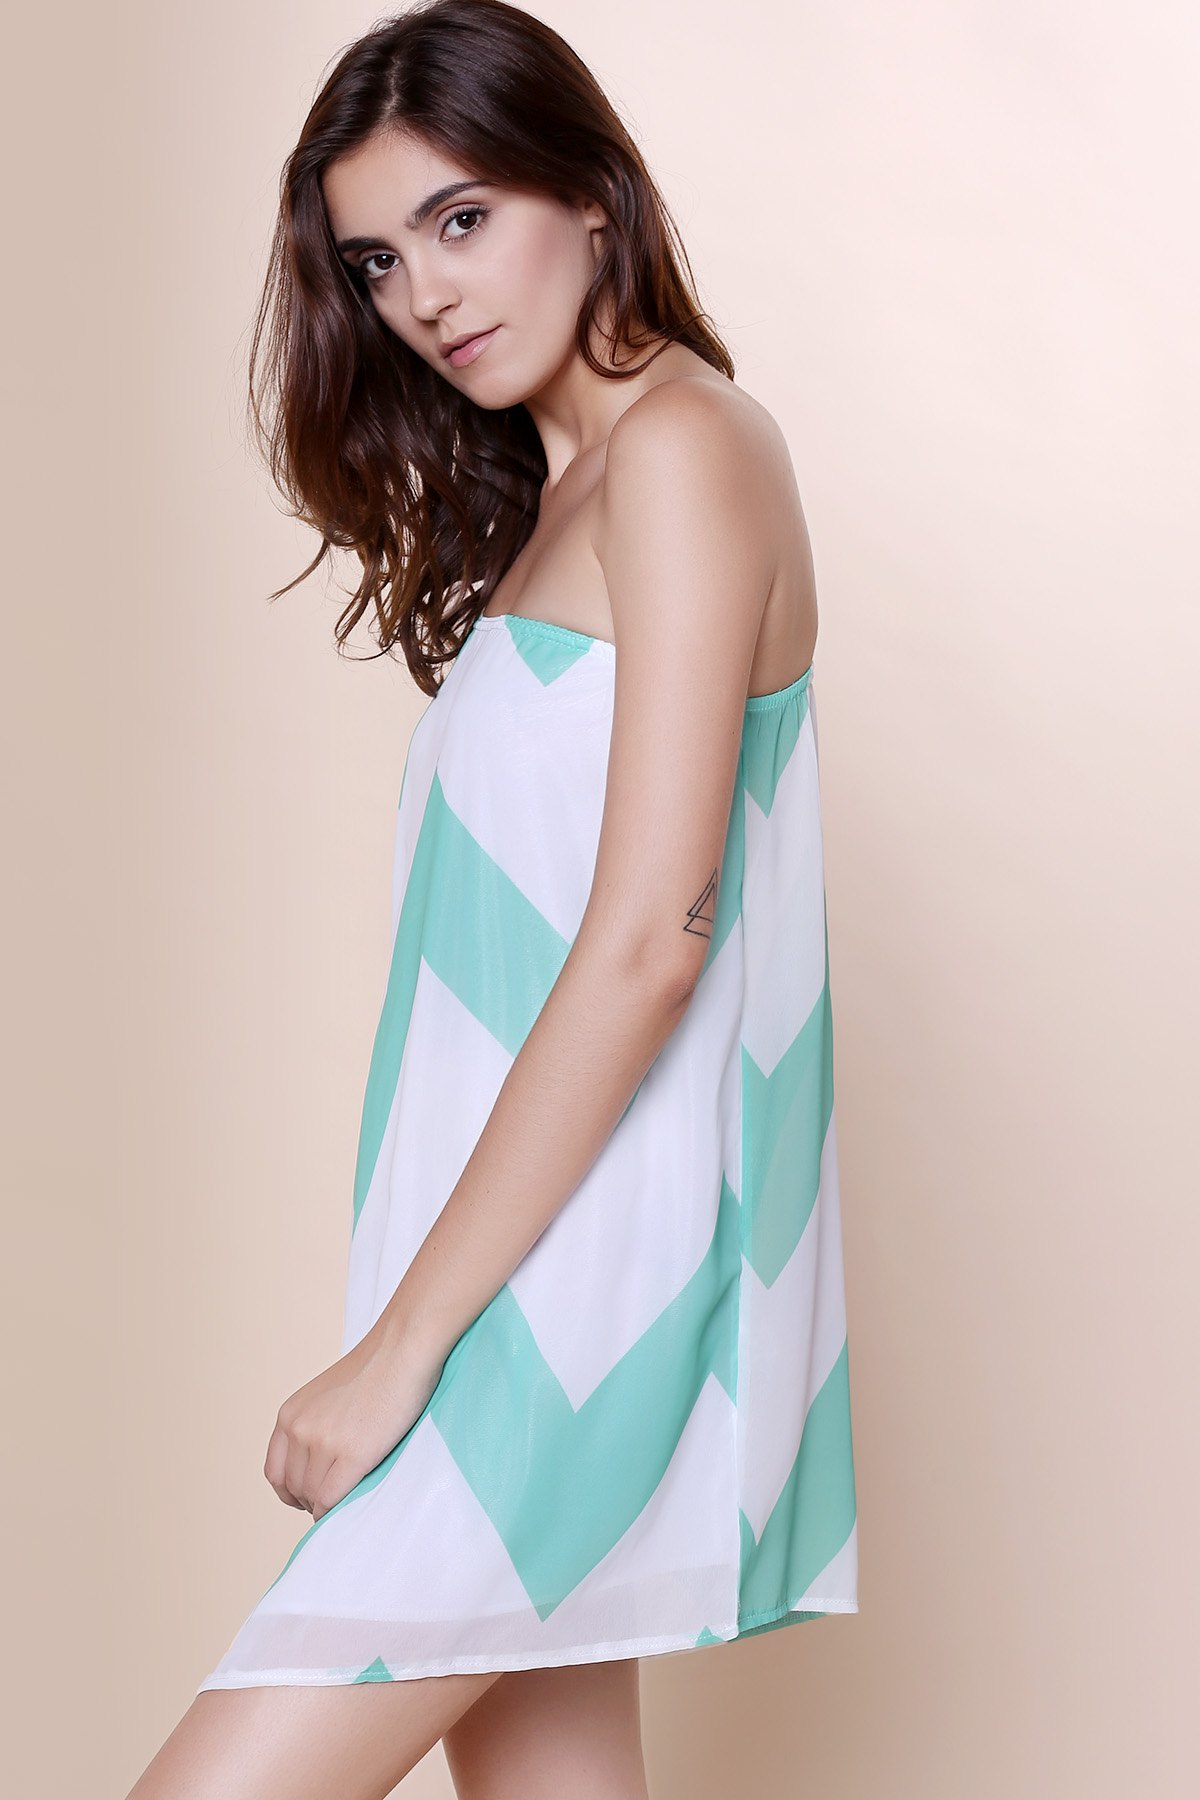 Attractive One-Shoulder Chevron Printed 3/4 Sleeve Chiffon Dress For Women - BLUE S